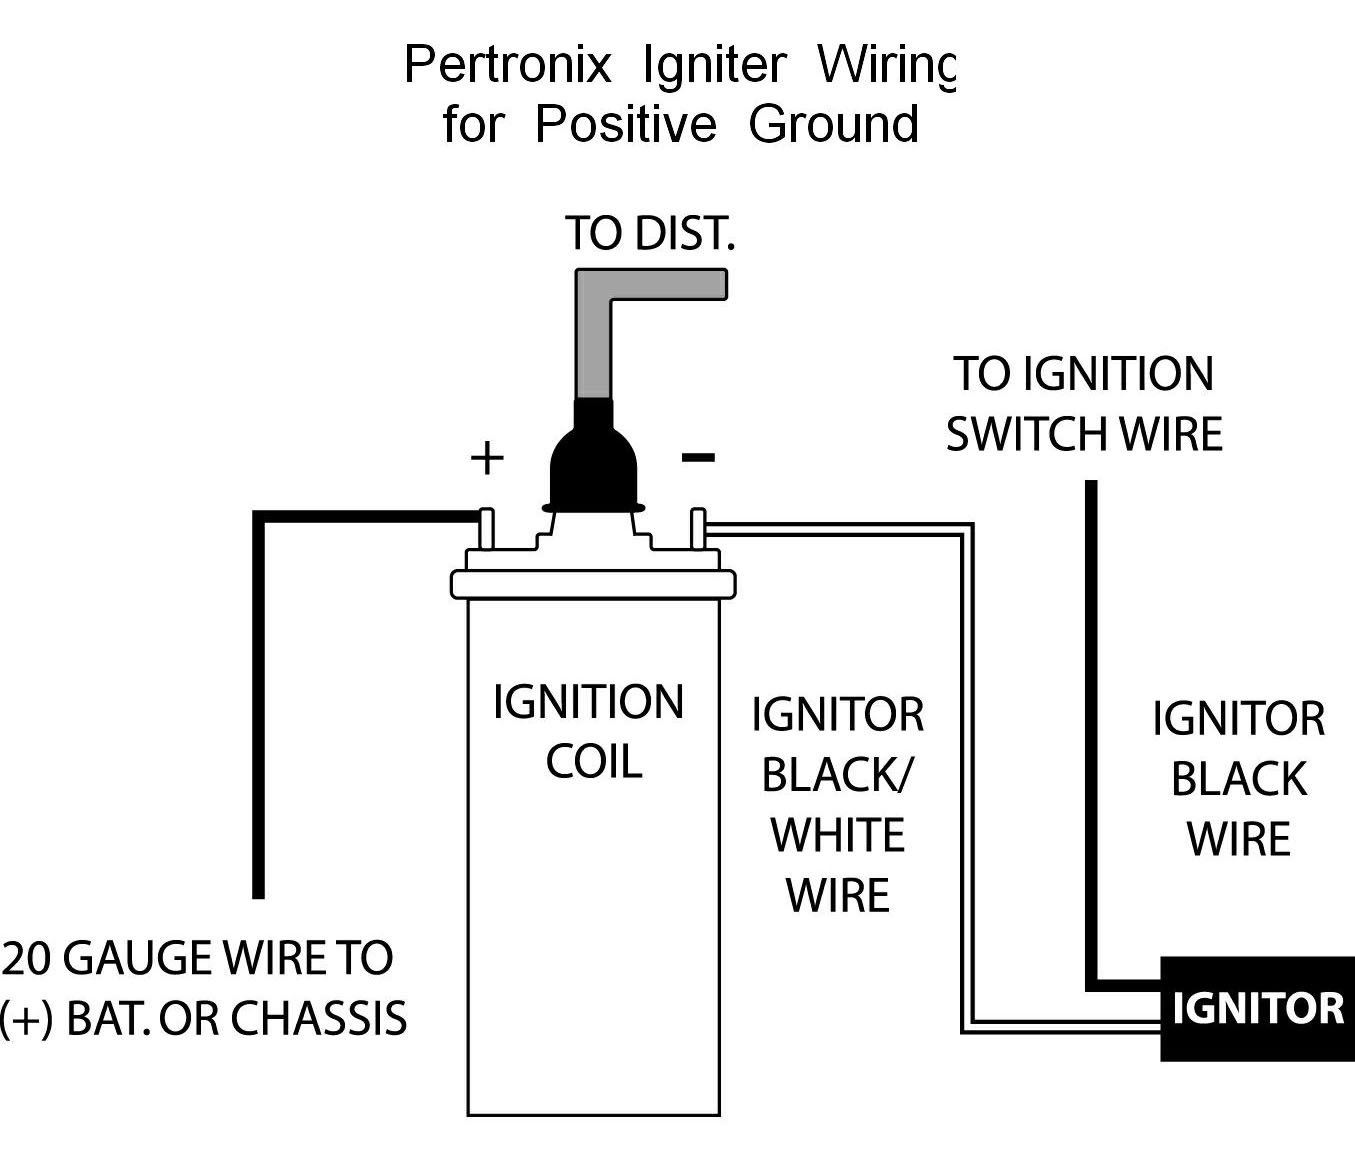 Pertronix Ignitor Wiring Diagram Manual Guide Electric Starter Positive Ground Rh Ttalk Info Resistor Ii